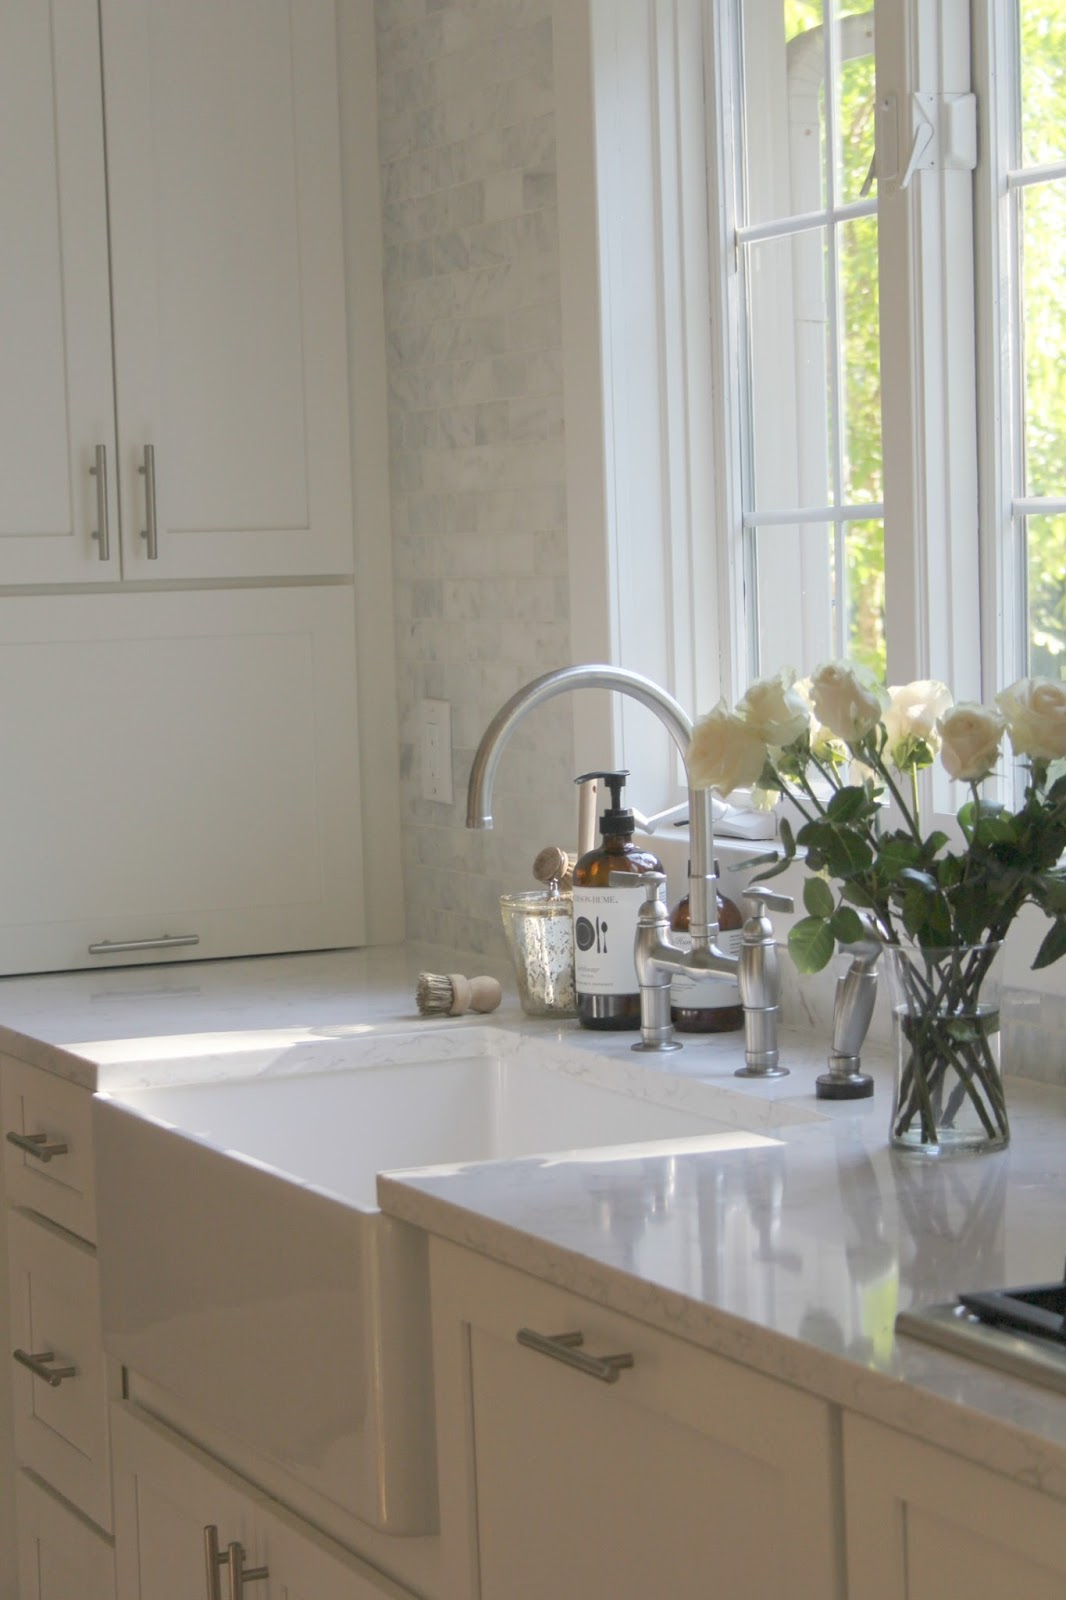 White Kitchen Cabinets With White Quartz Countertops How to Choose the Right White Quartz for Kitchen Countertops